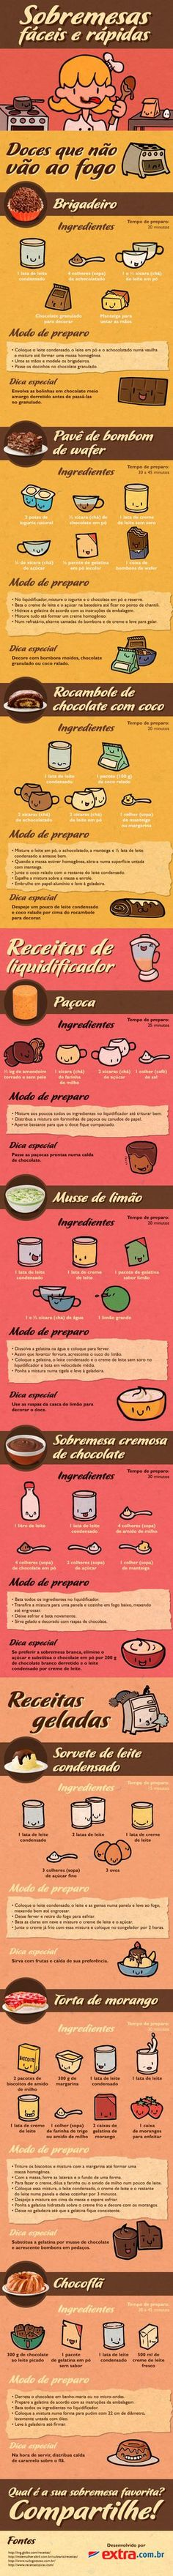 Leia, prepare e experimente! Easy Cooking, Cooking Time, Cooking Recipes, I Love Food, Good Food, Yummy Food, Food Illustrations, Sweet Life, Creative Food